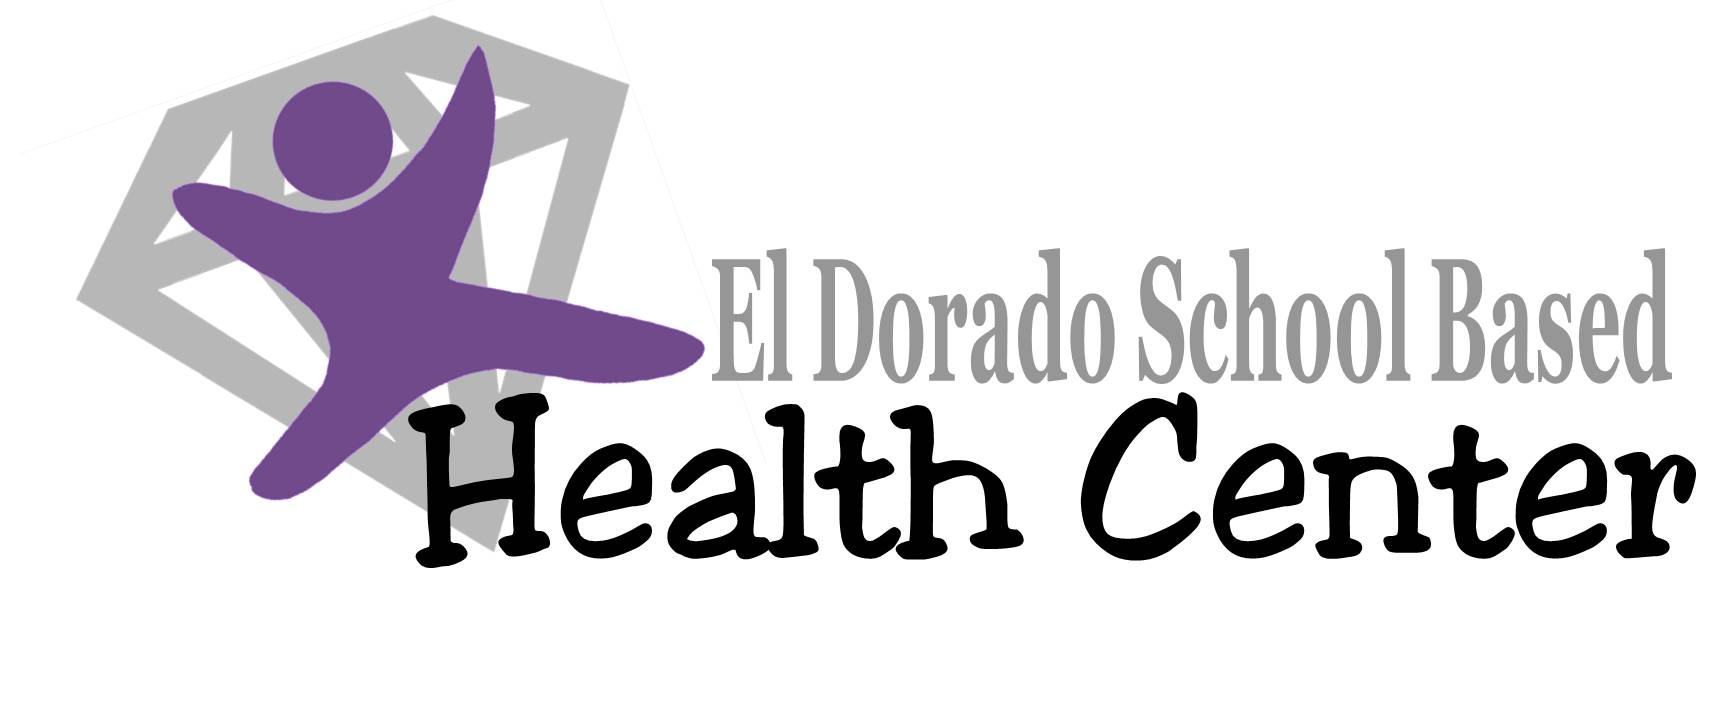 EL DORADO SCHOOL BASED HEALTH CENTER